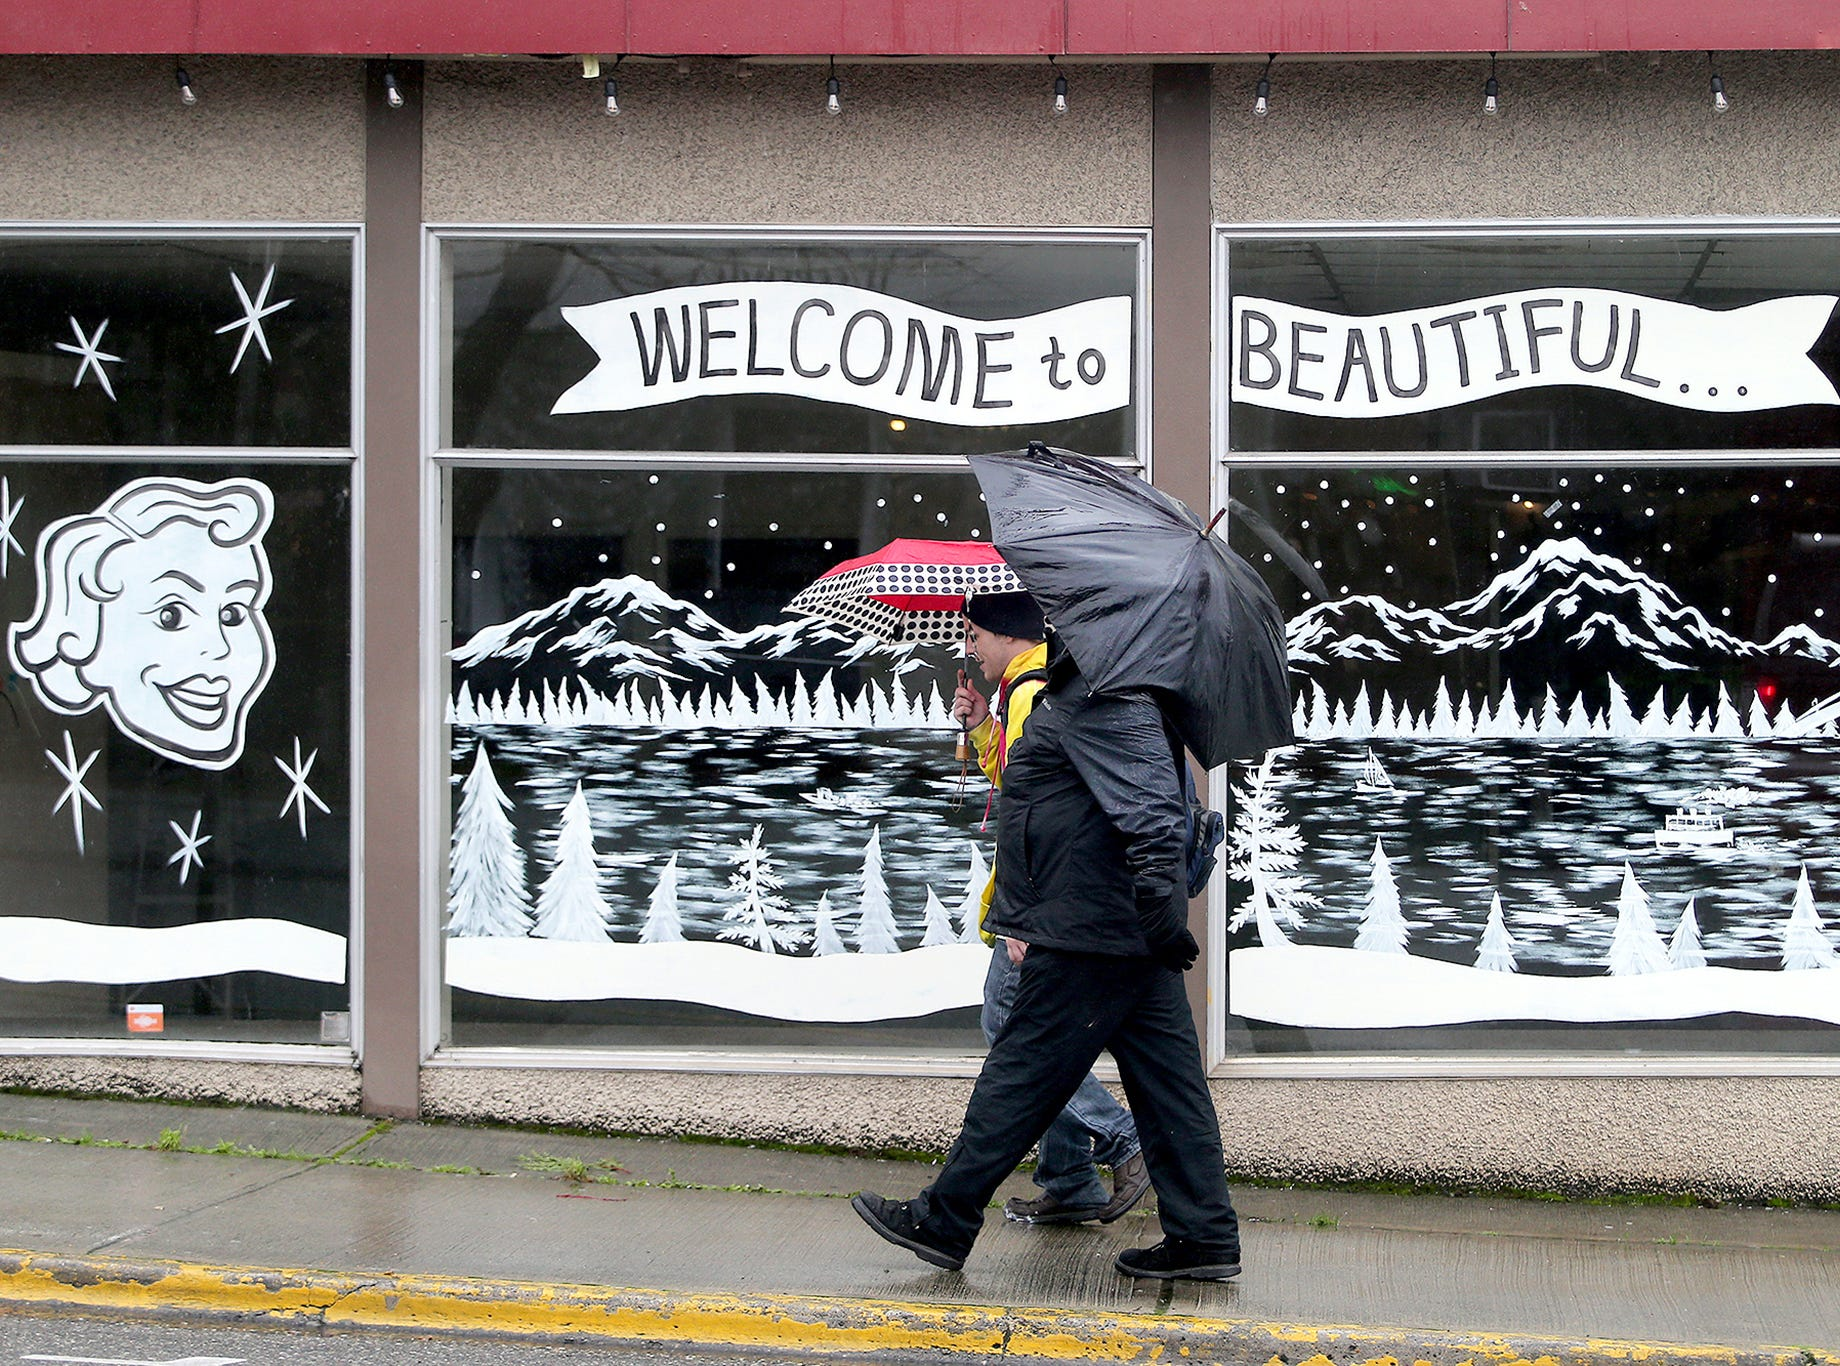 It's walking in a rainy wonderland in Bremerton on Thursday, December 13, 2018. Pedestrians walk past the former Manette TV building in Manette, under a snowy Olympics Mountains, and winter Manette view theme on the window.